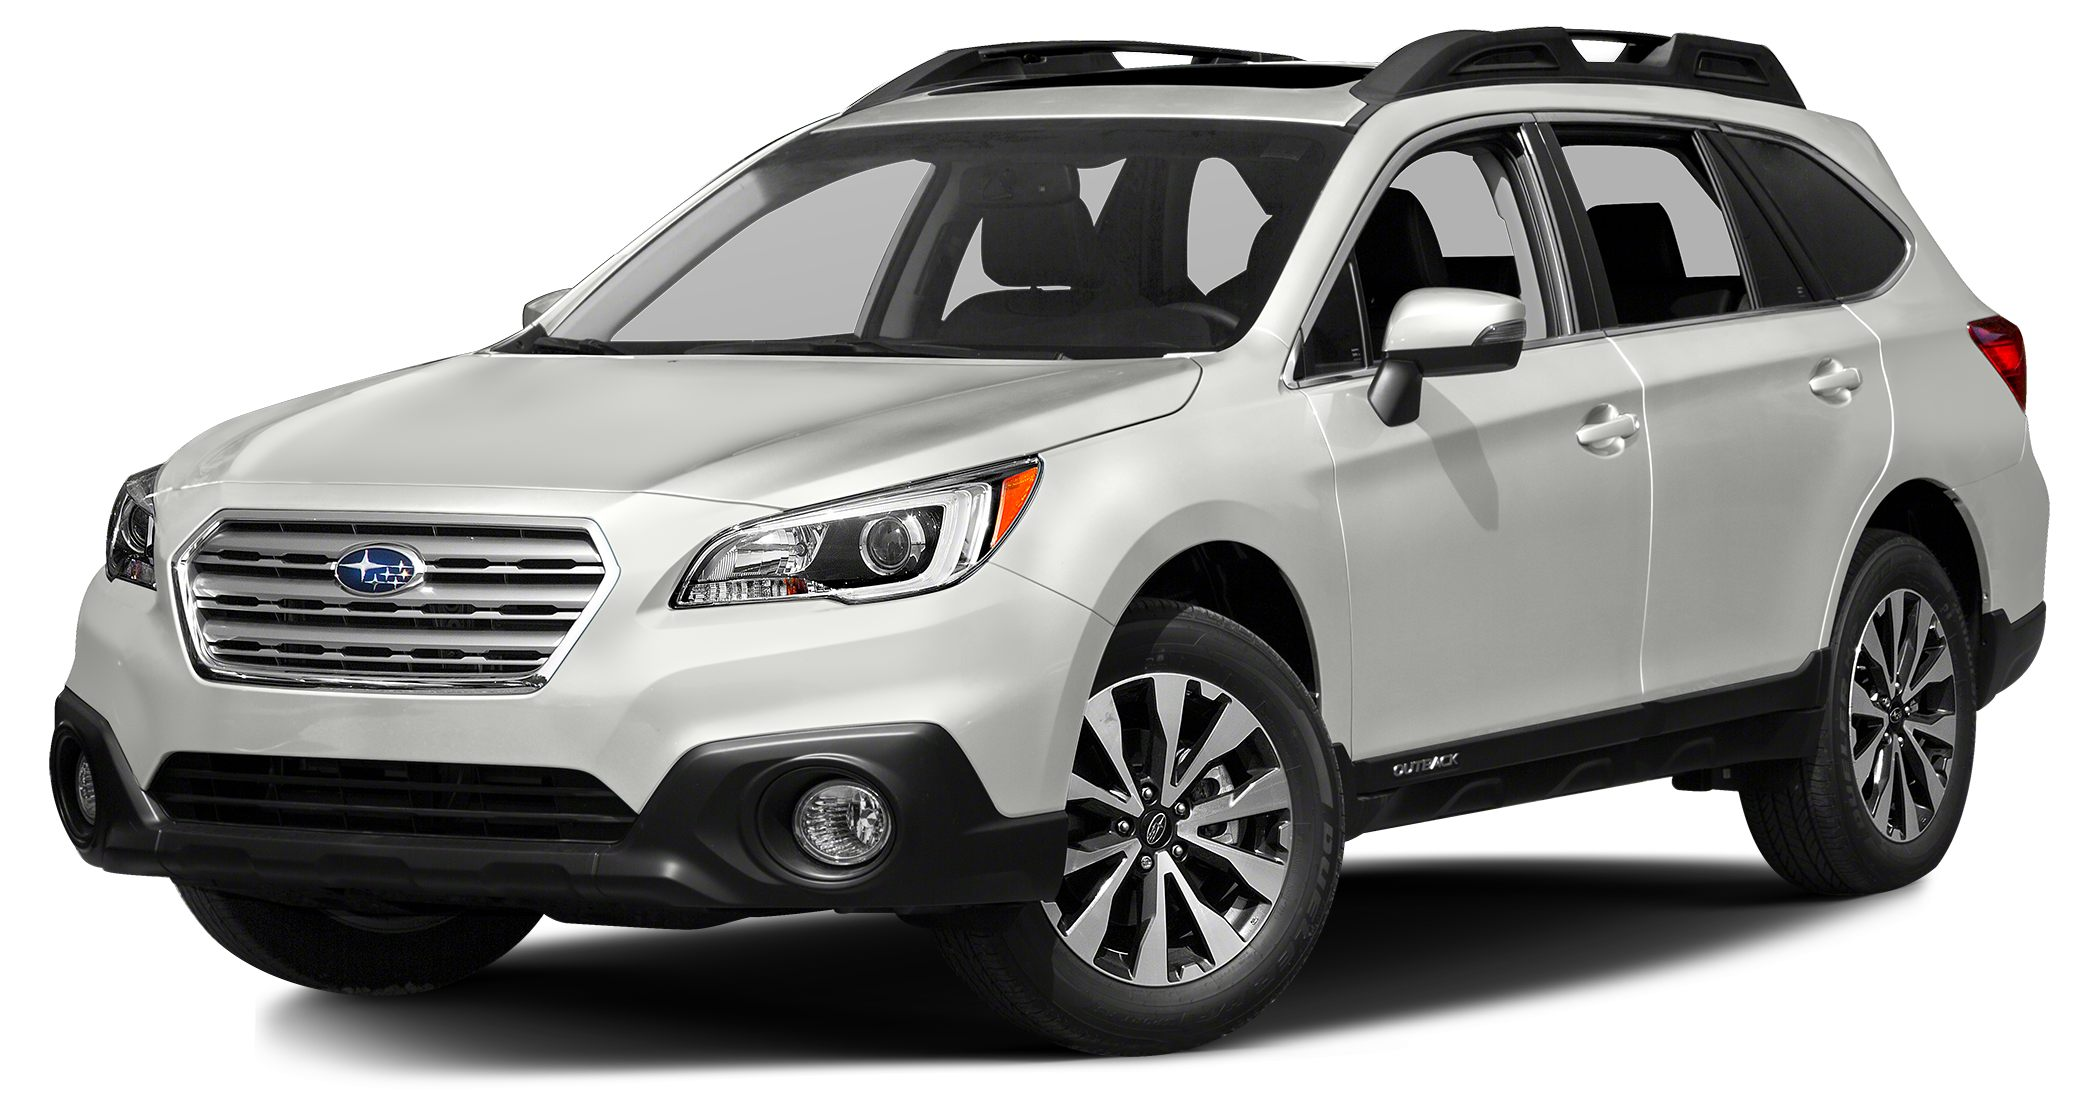 2015 Subaru Outback 25i Limited Here at Lake Keowee Ford our customers come first and our prices